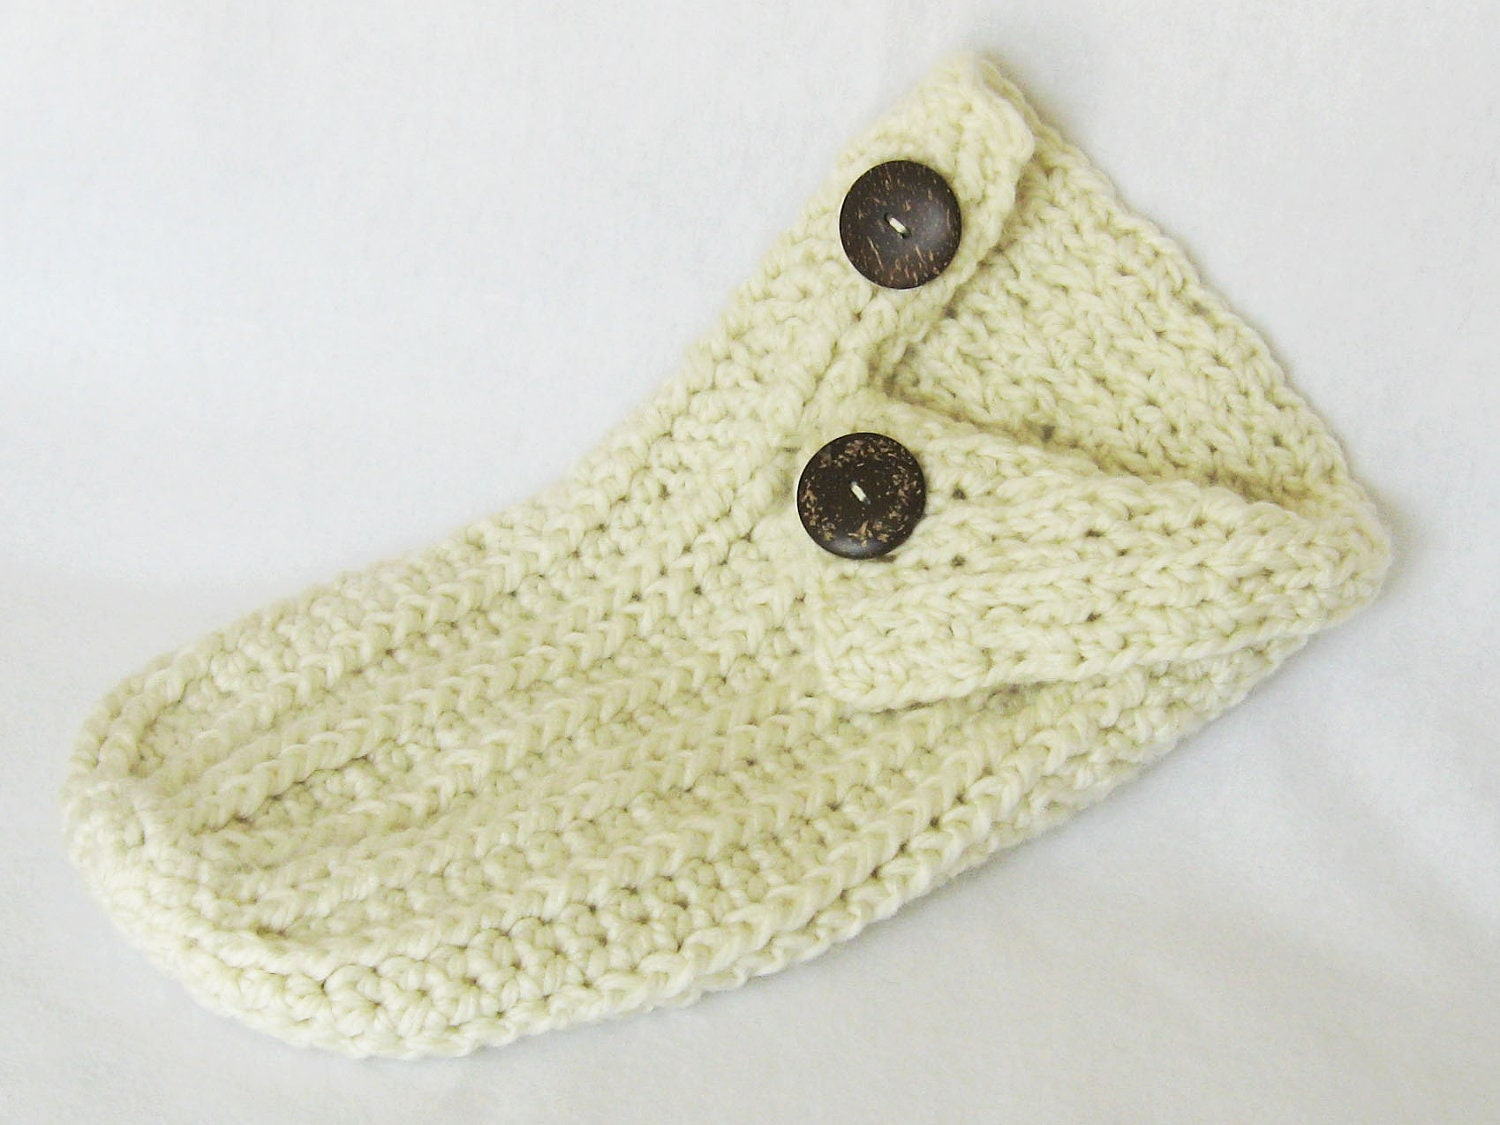 Crochet Patterns For Baby Cocoons Free : free crochet patterns baby cocoon